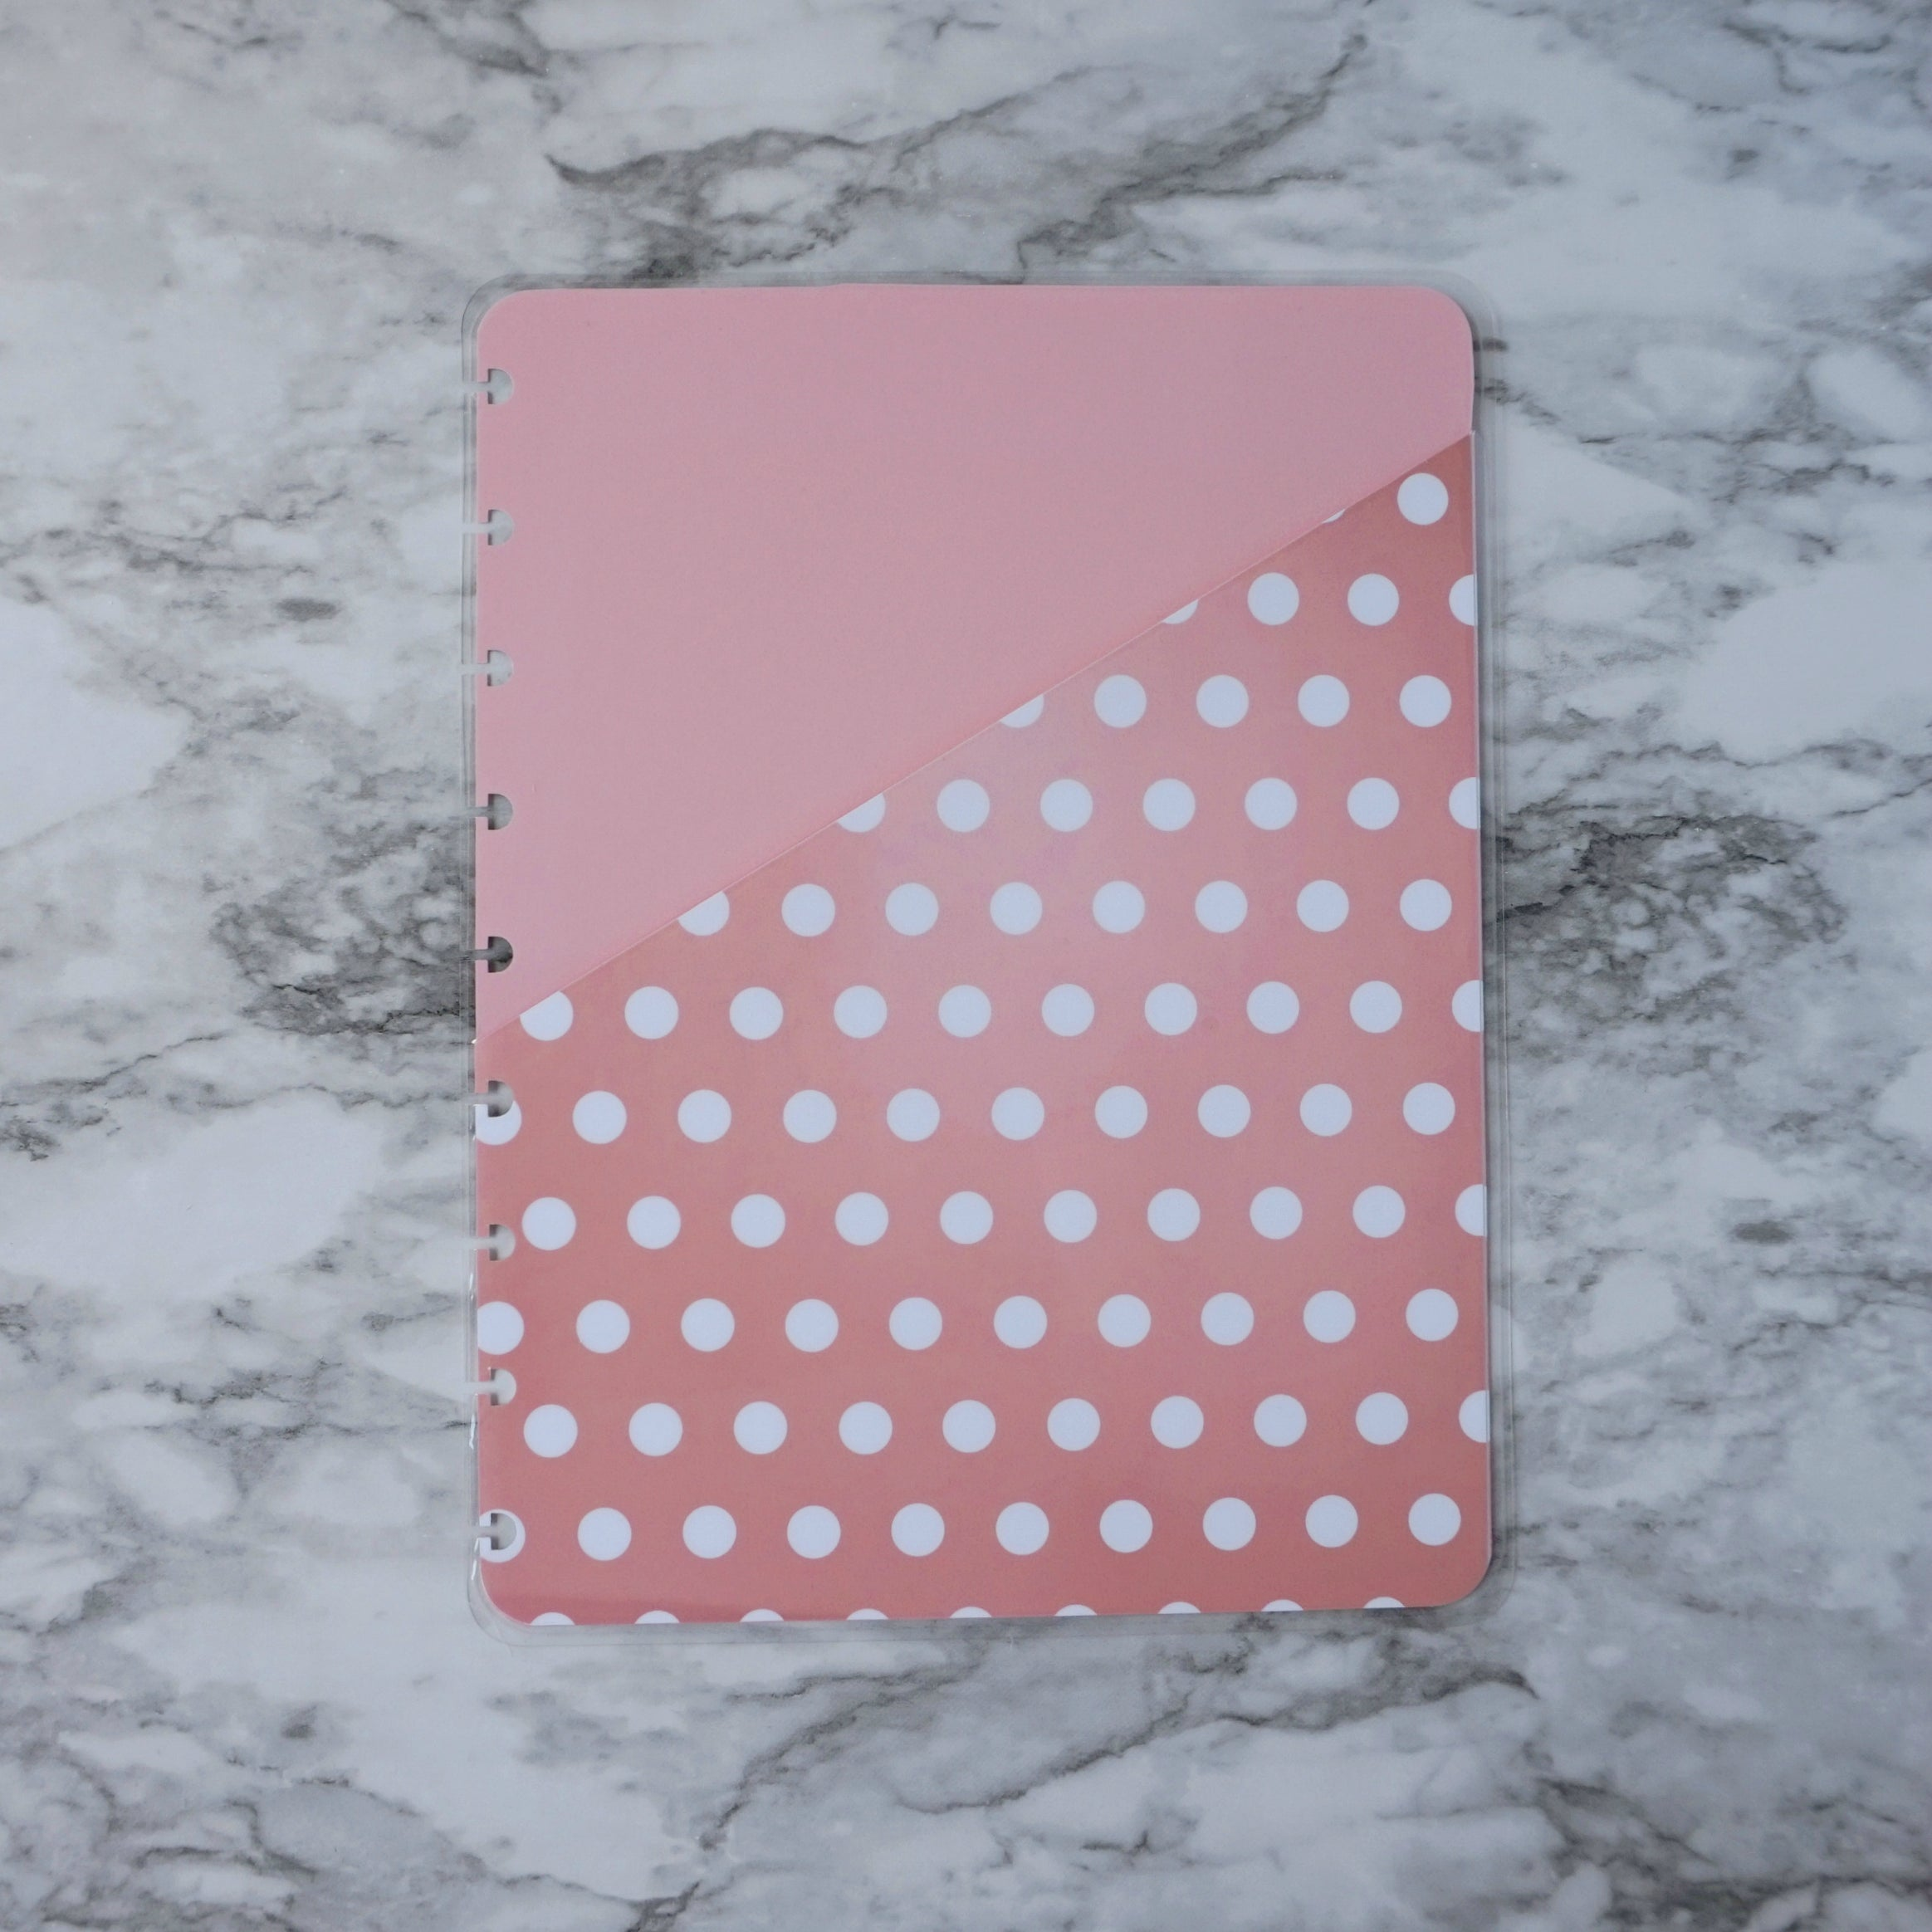 Planner Folders A5, Personal, Pocket Size and Discbound System Classic, Big, and Mini